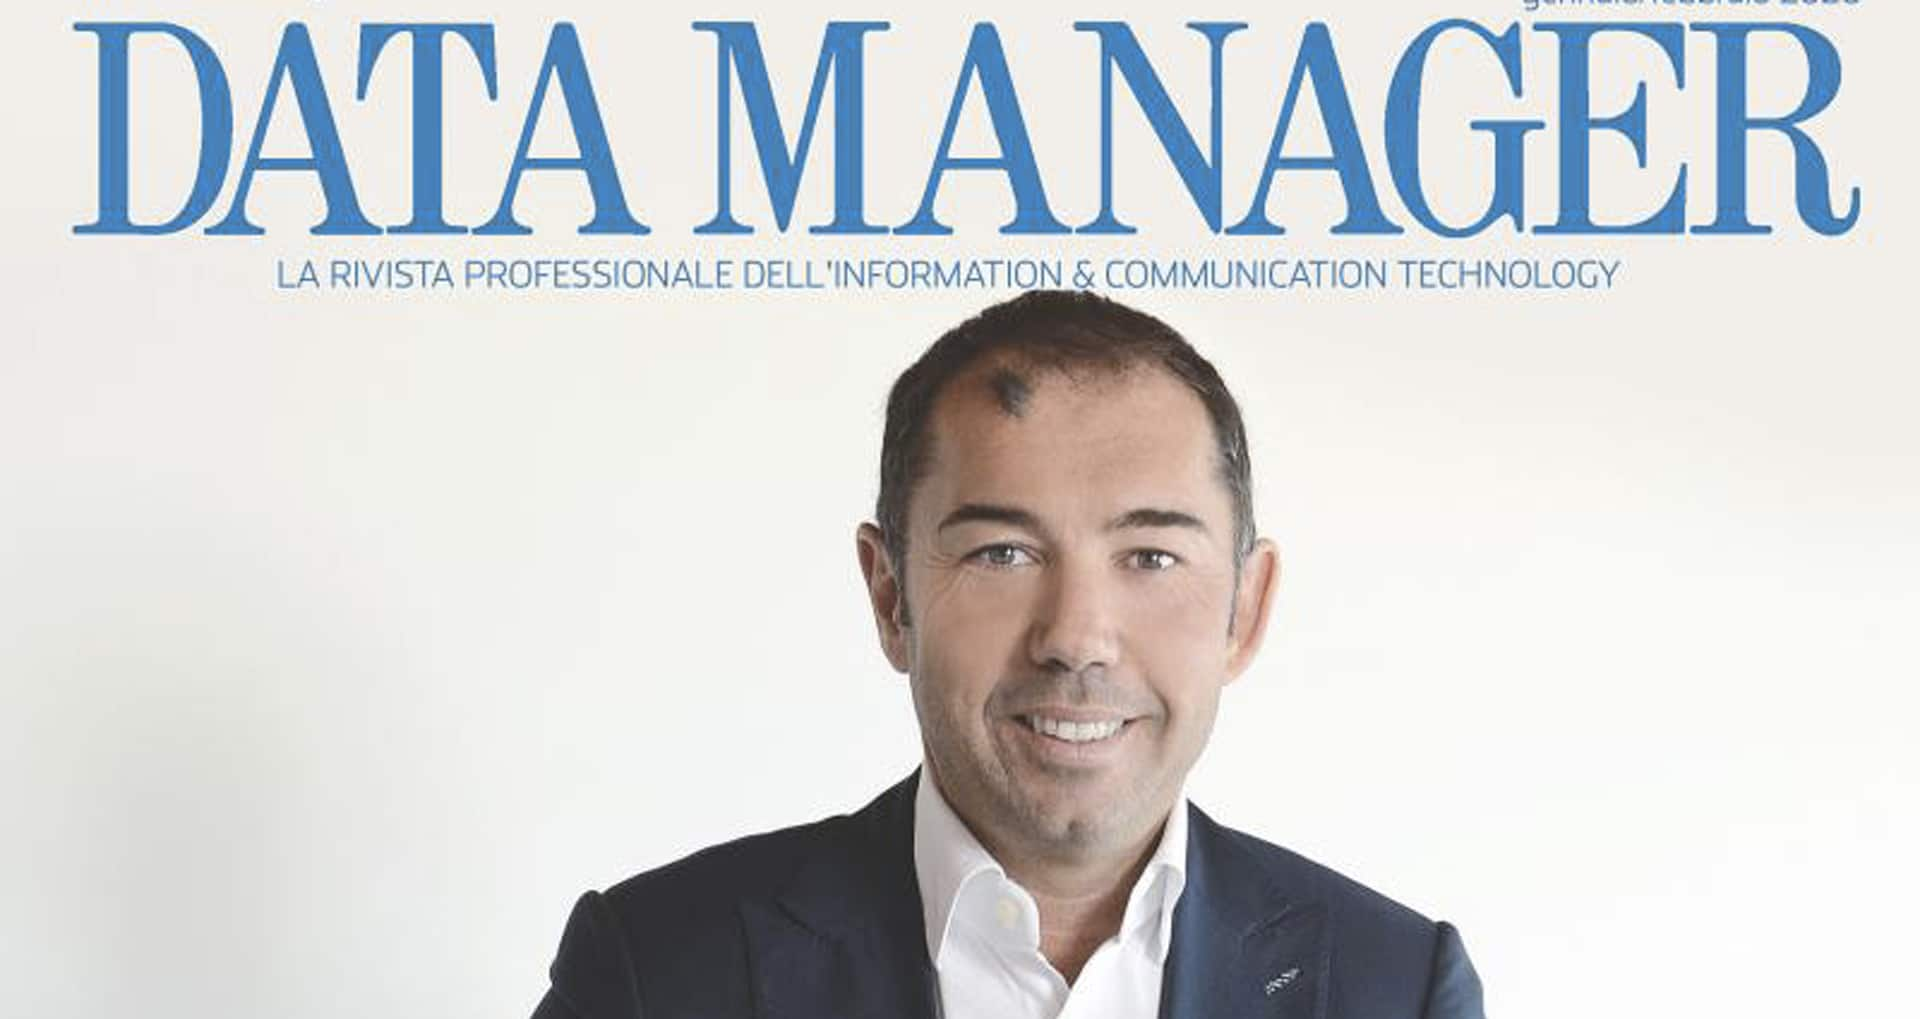 Data manager dedicates the january-february cover story to gruppo filippetti.